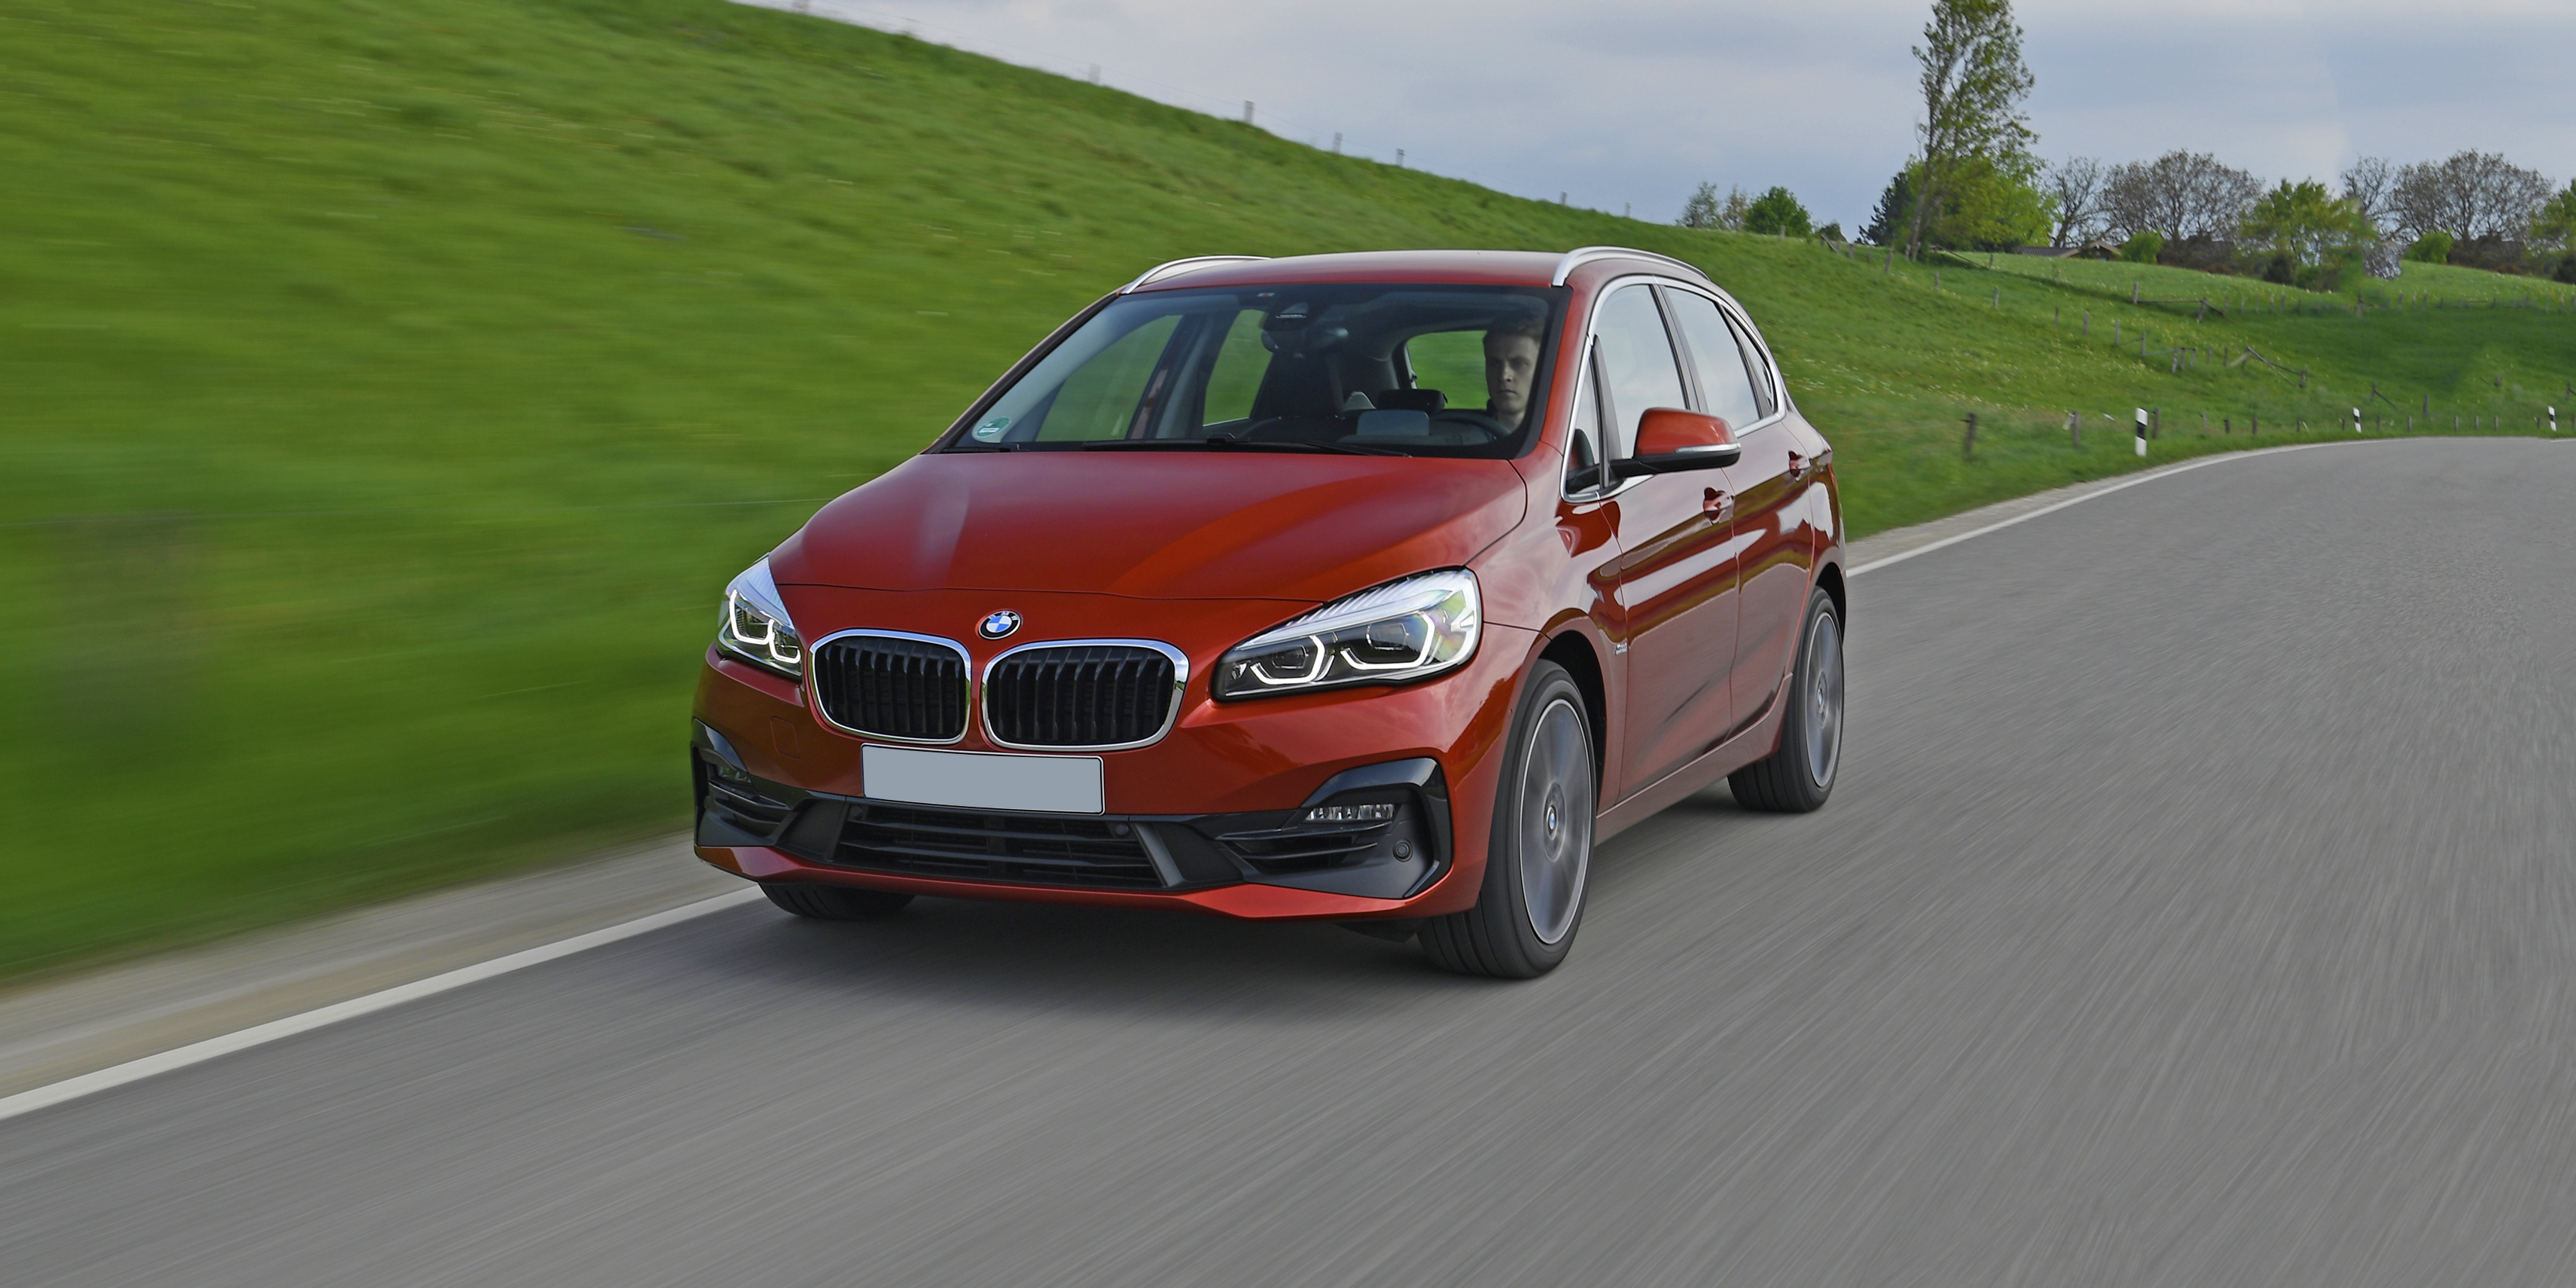 New Bmw 2 Series Active Tourer Review Carwow